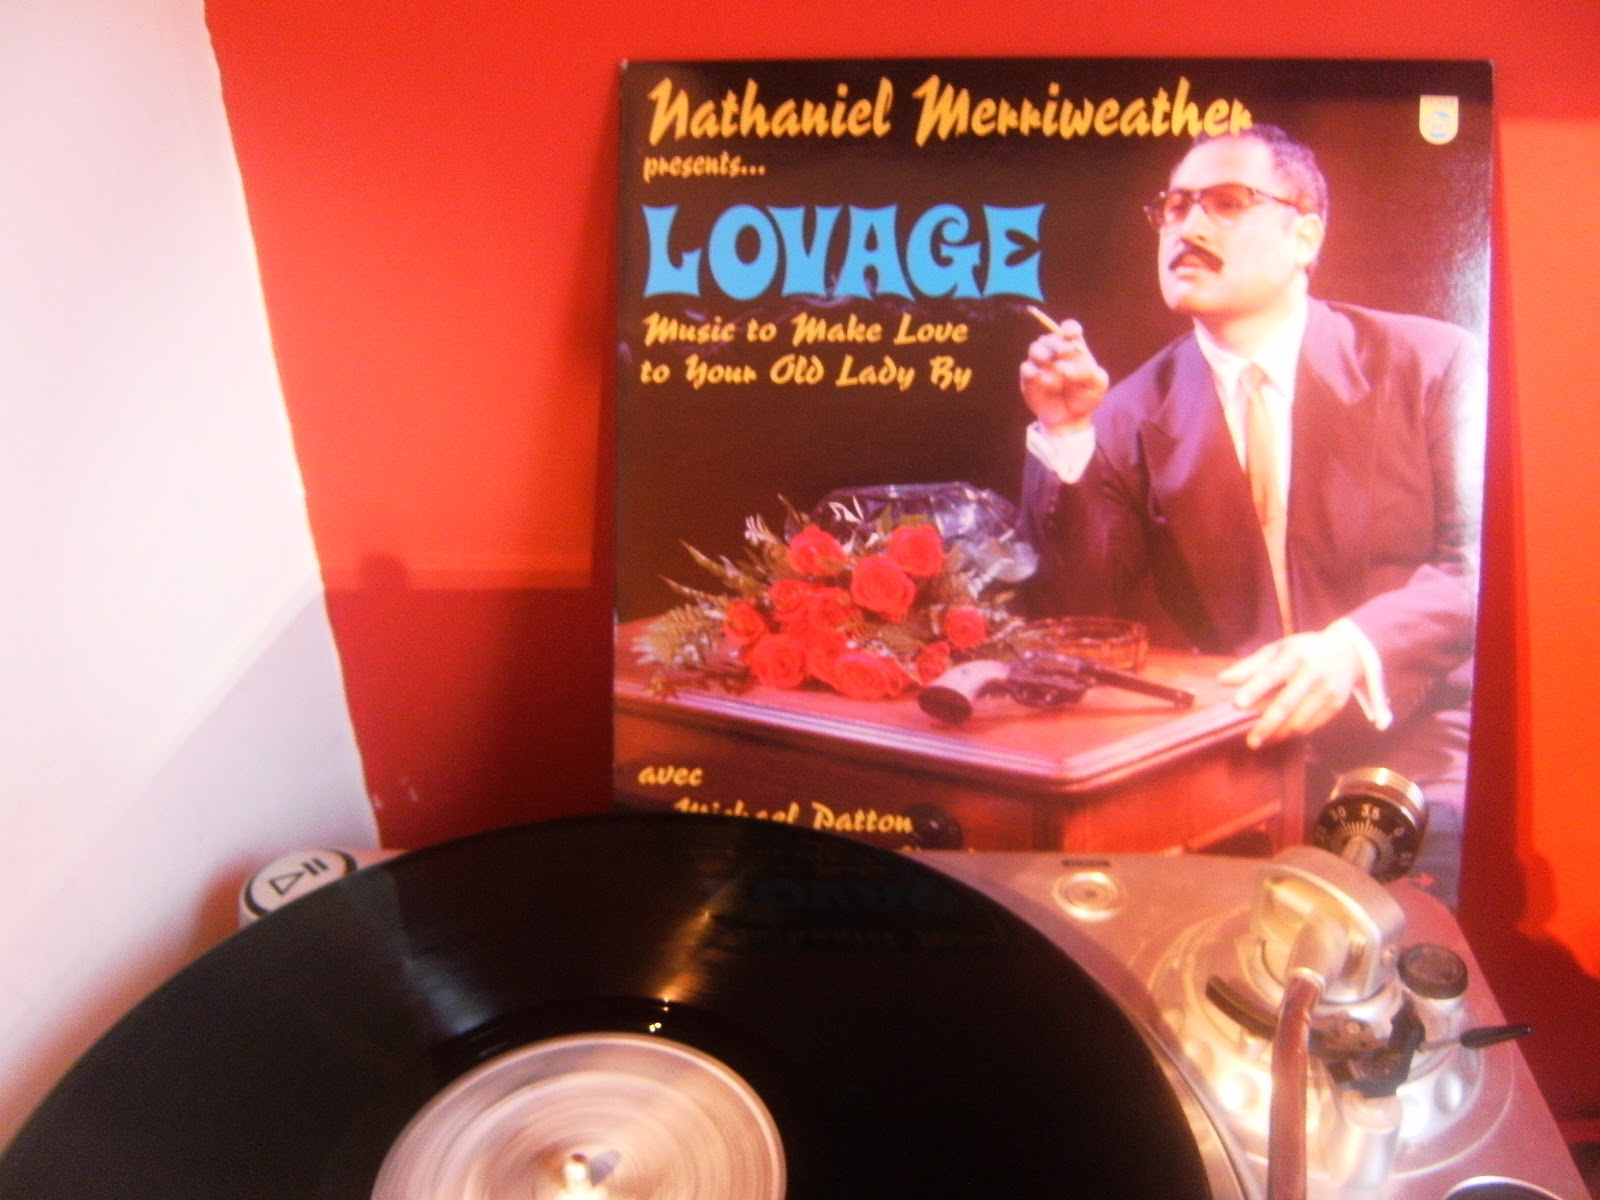 Lovage music to make love download